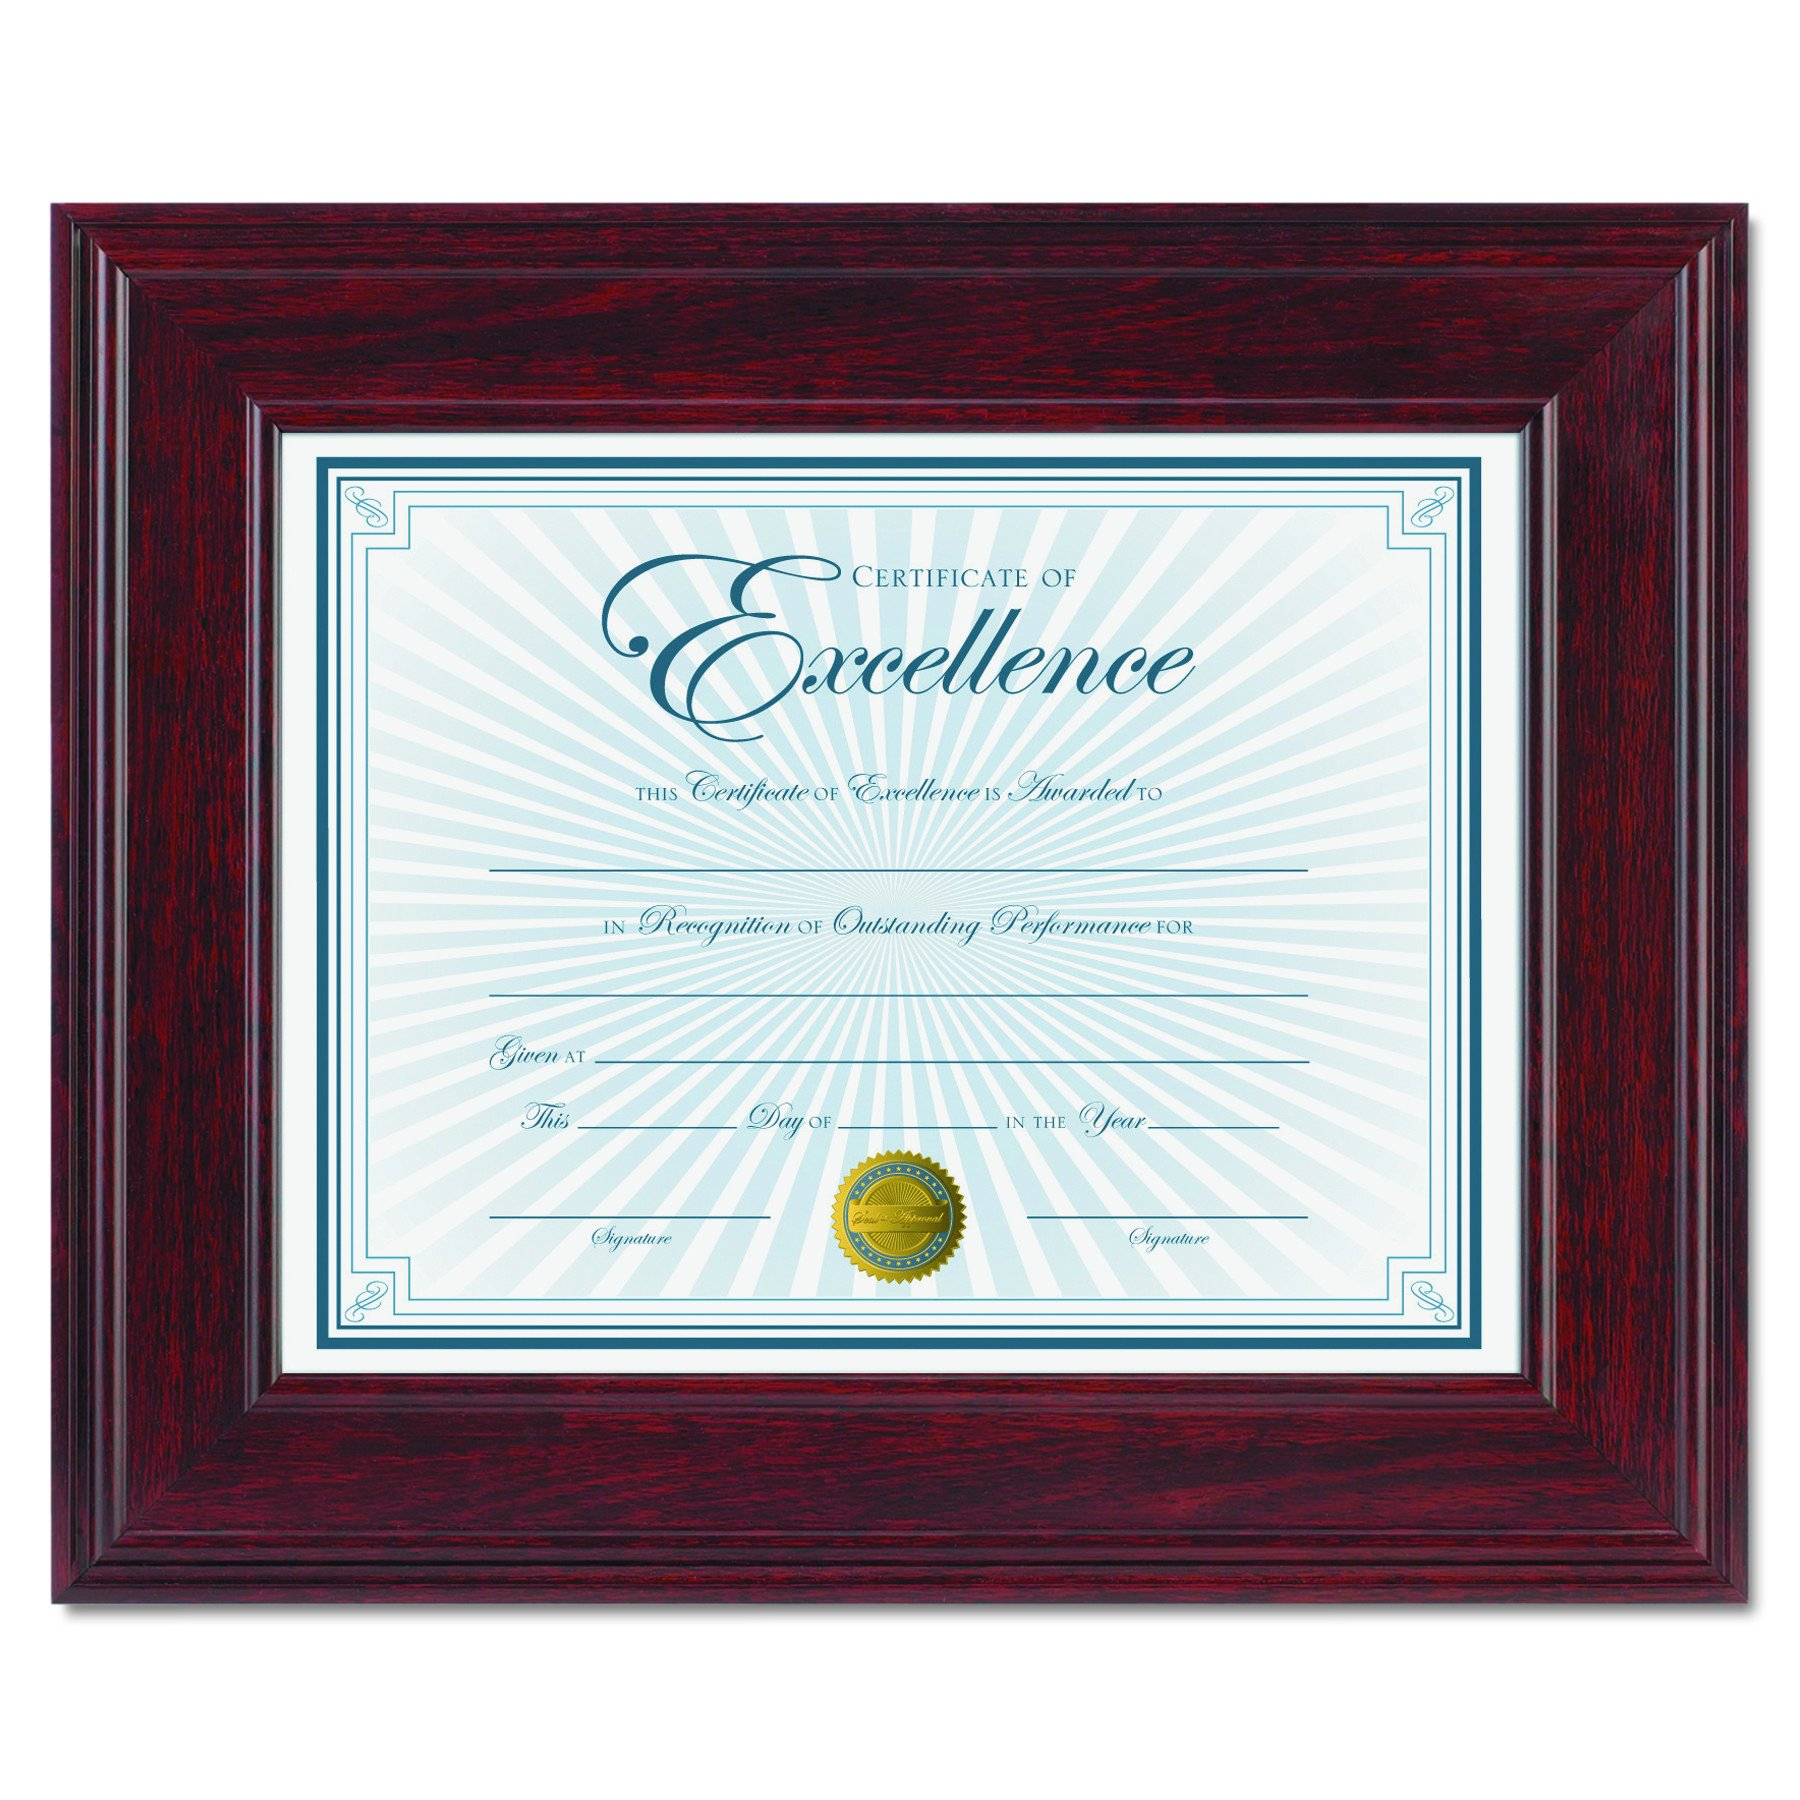 DAX Executive Document/Photo Frame, Desk/Wall Mount, Wood, 8.5 x 11 Inches, Mahogany (N15787NT)